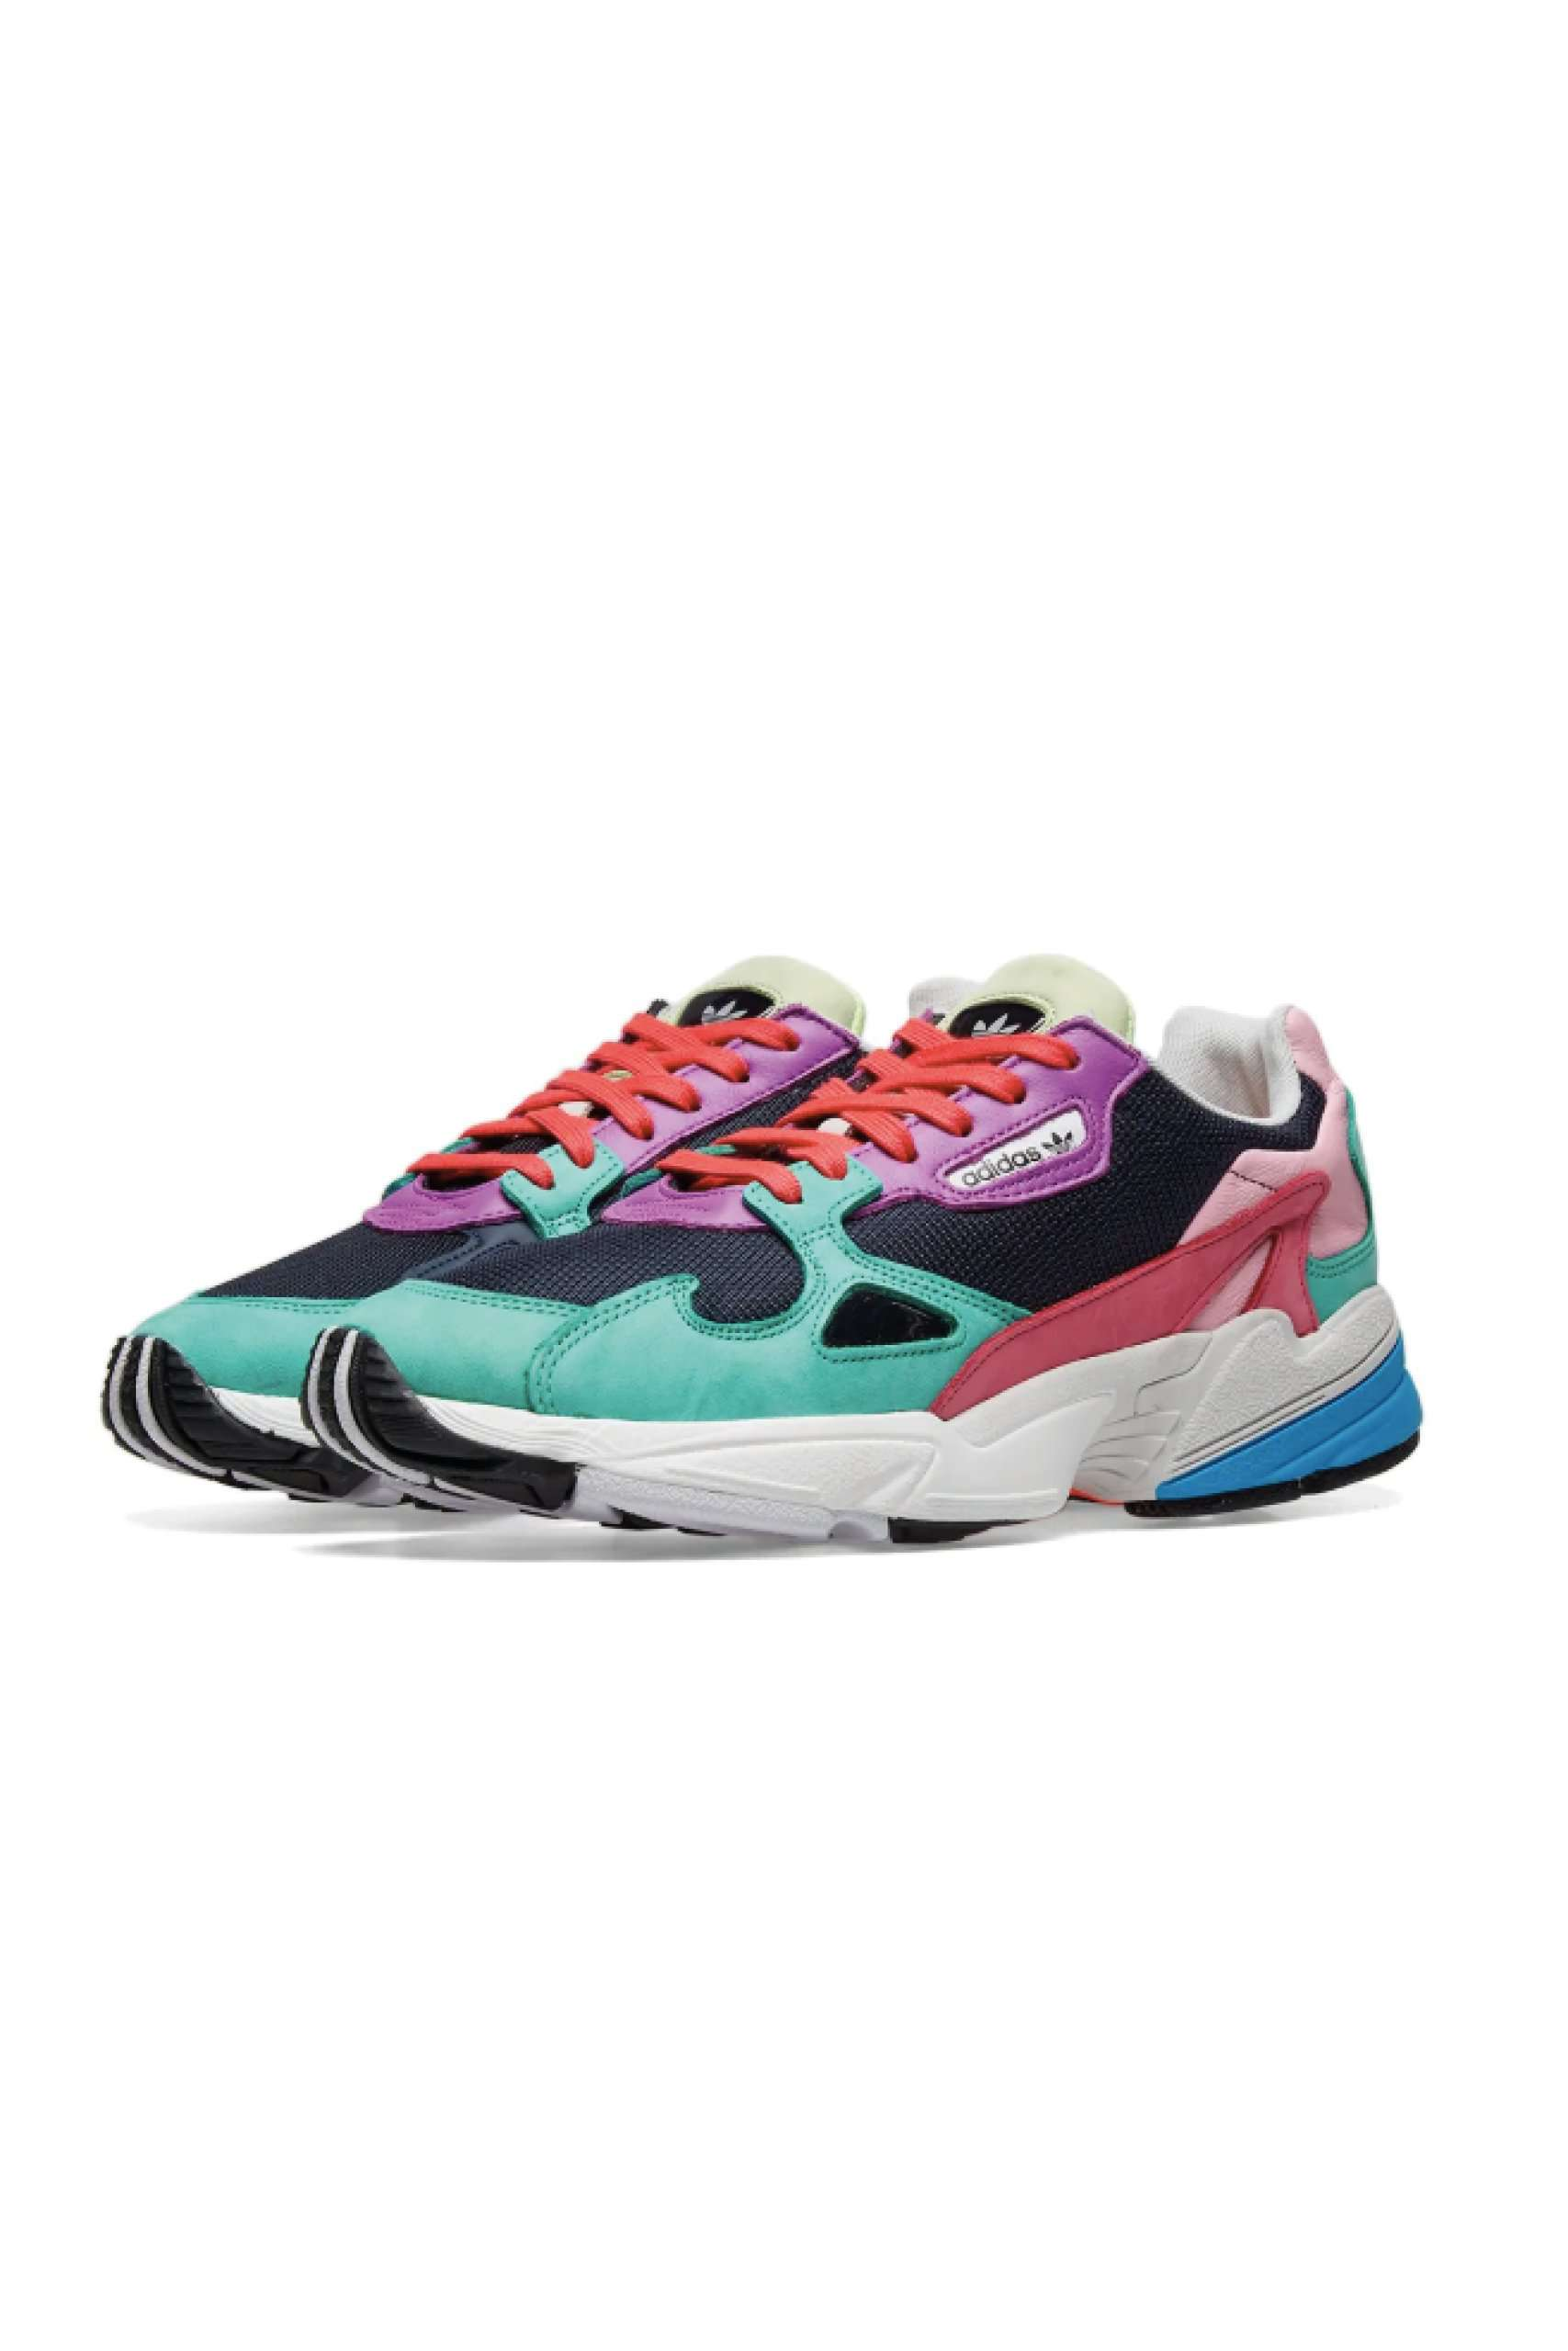 adidas's Falcon Gets a Cozy Multicolor Scheme | Sneakers